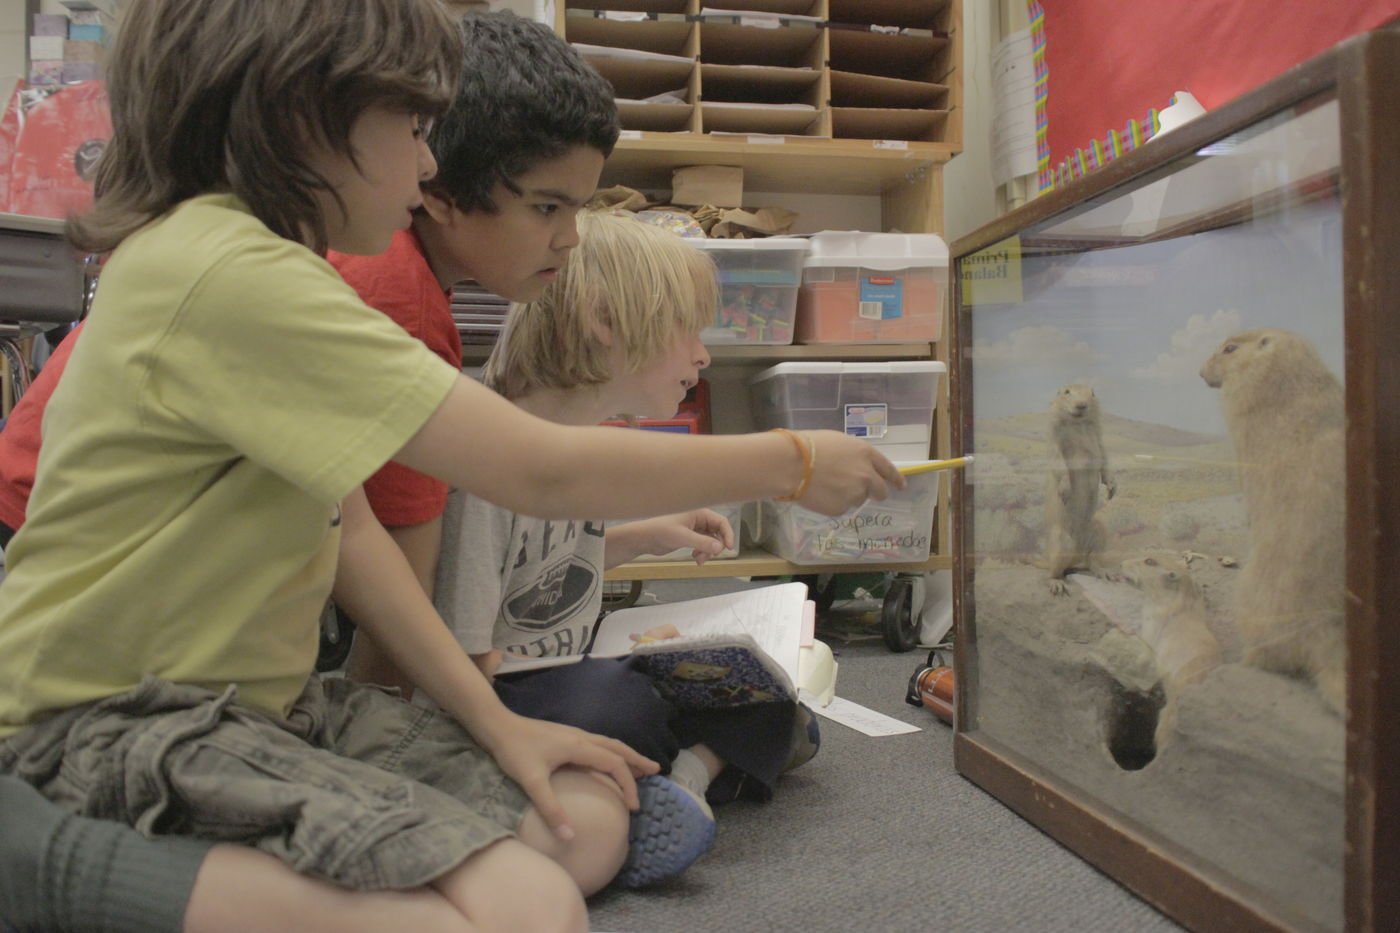 Three students, one pointing with a pencil, intently looking at a portable museum display case.